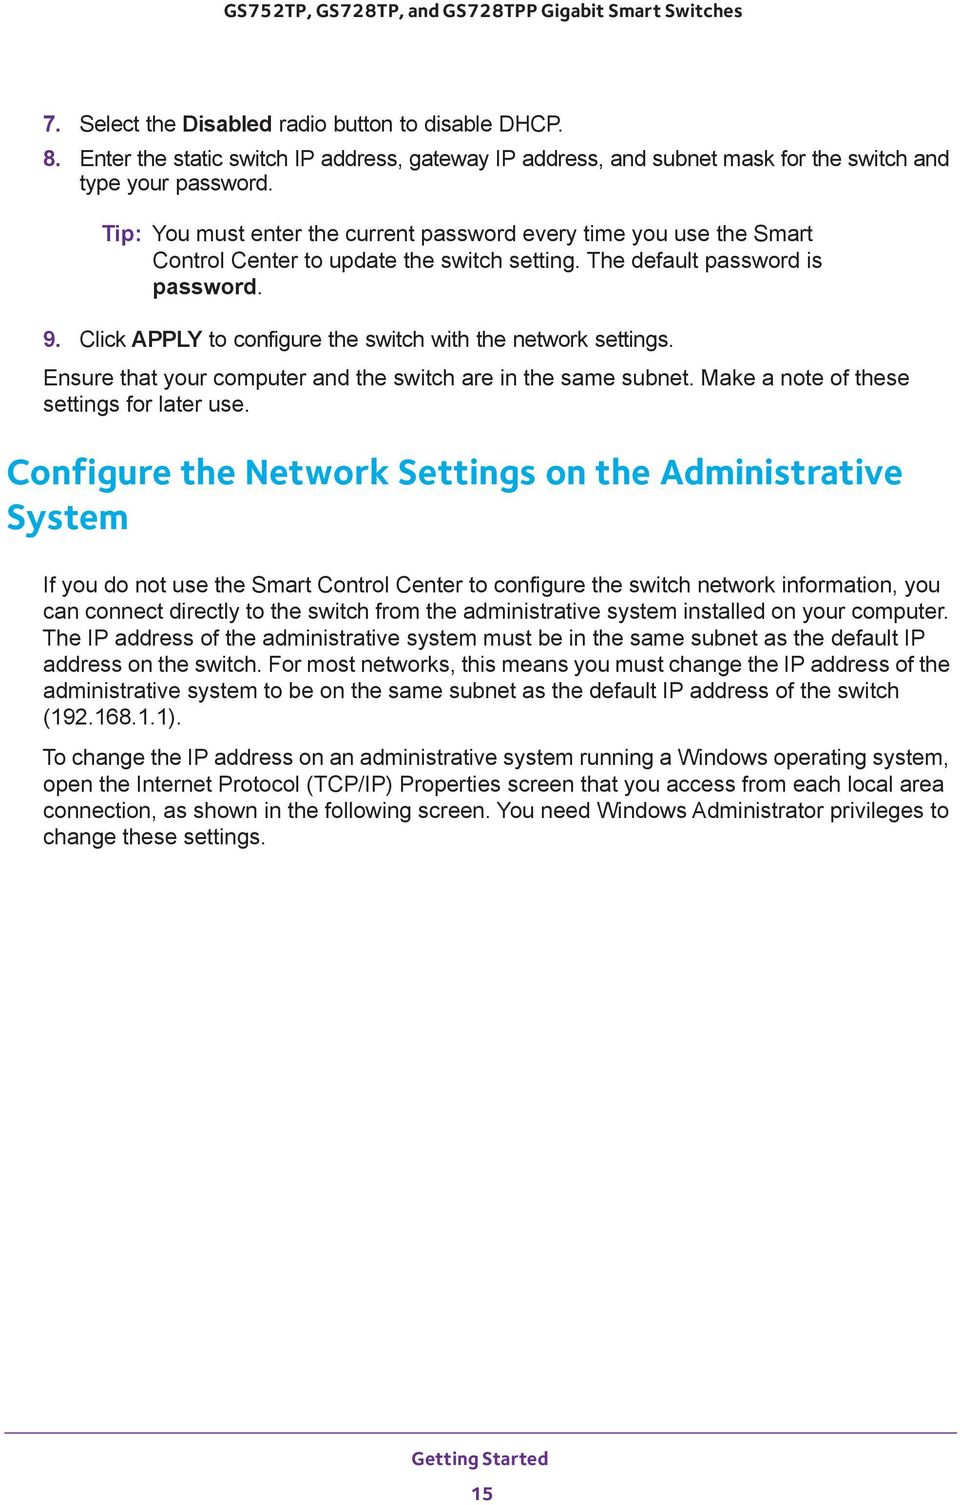 Click APPLY to configure the switch with the network settings. Ensure that your computer and the switch are in the same subnet. Make a note of these settings for later use.